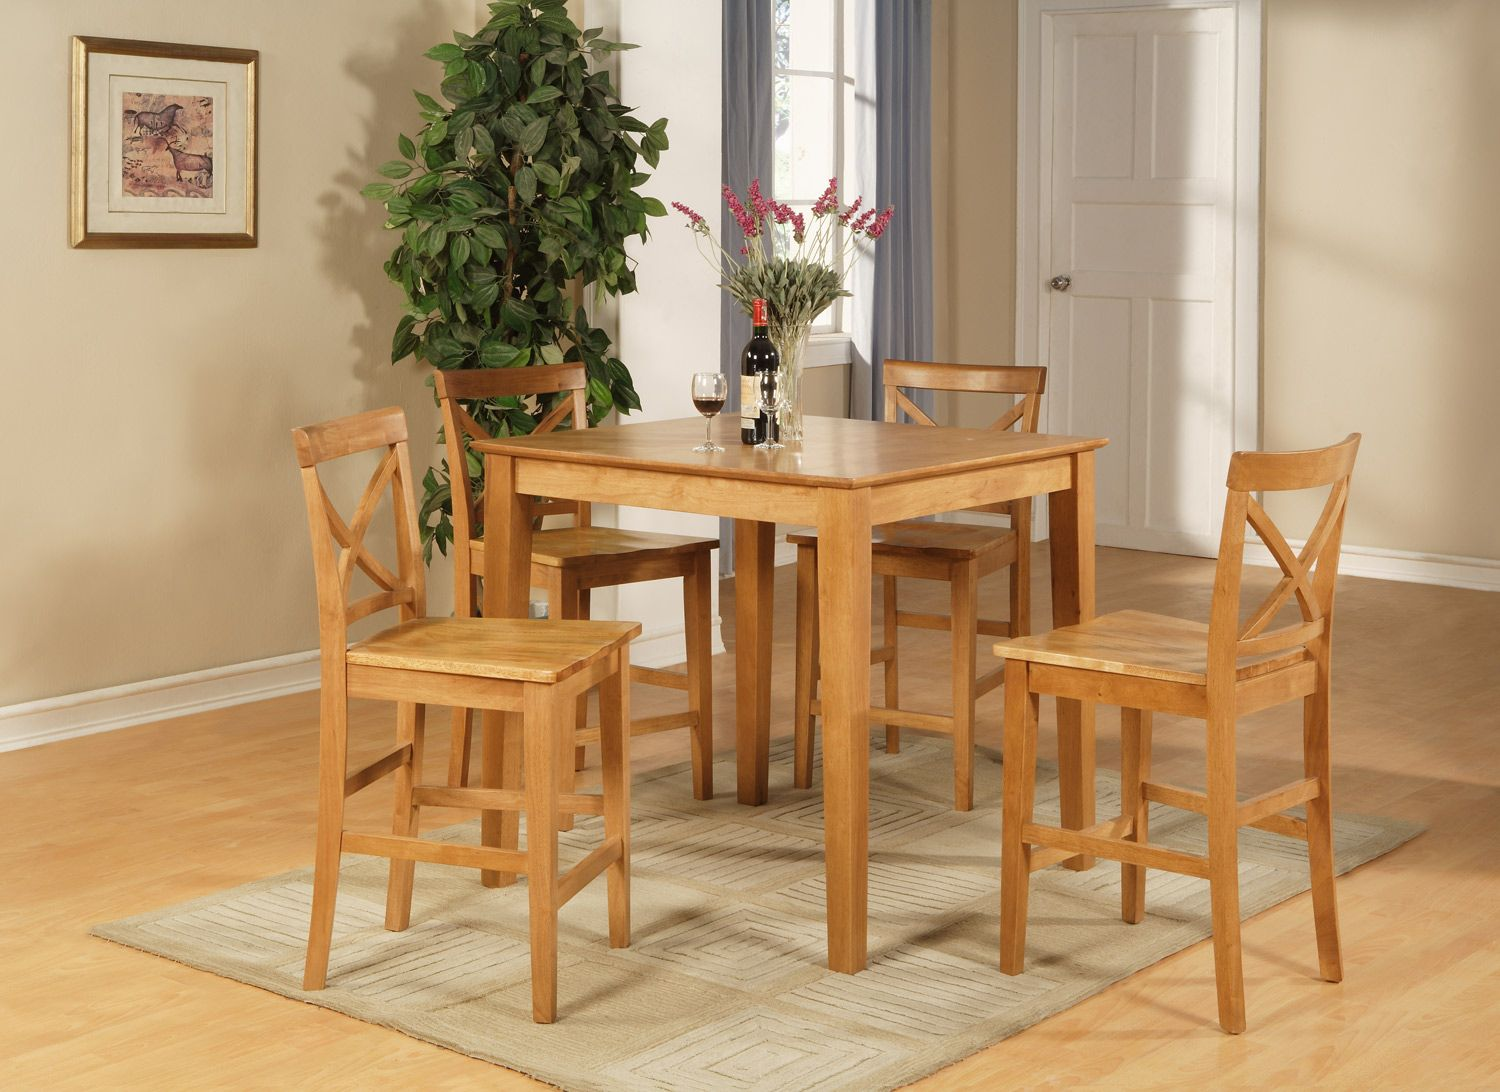 5pc Counter Height Pub Set in Oak Color | Couterheight Sets ...